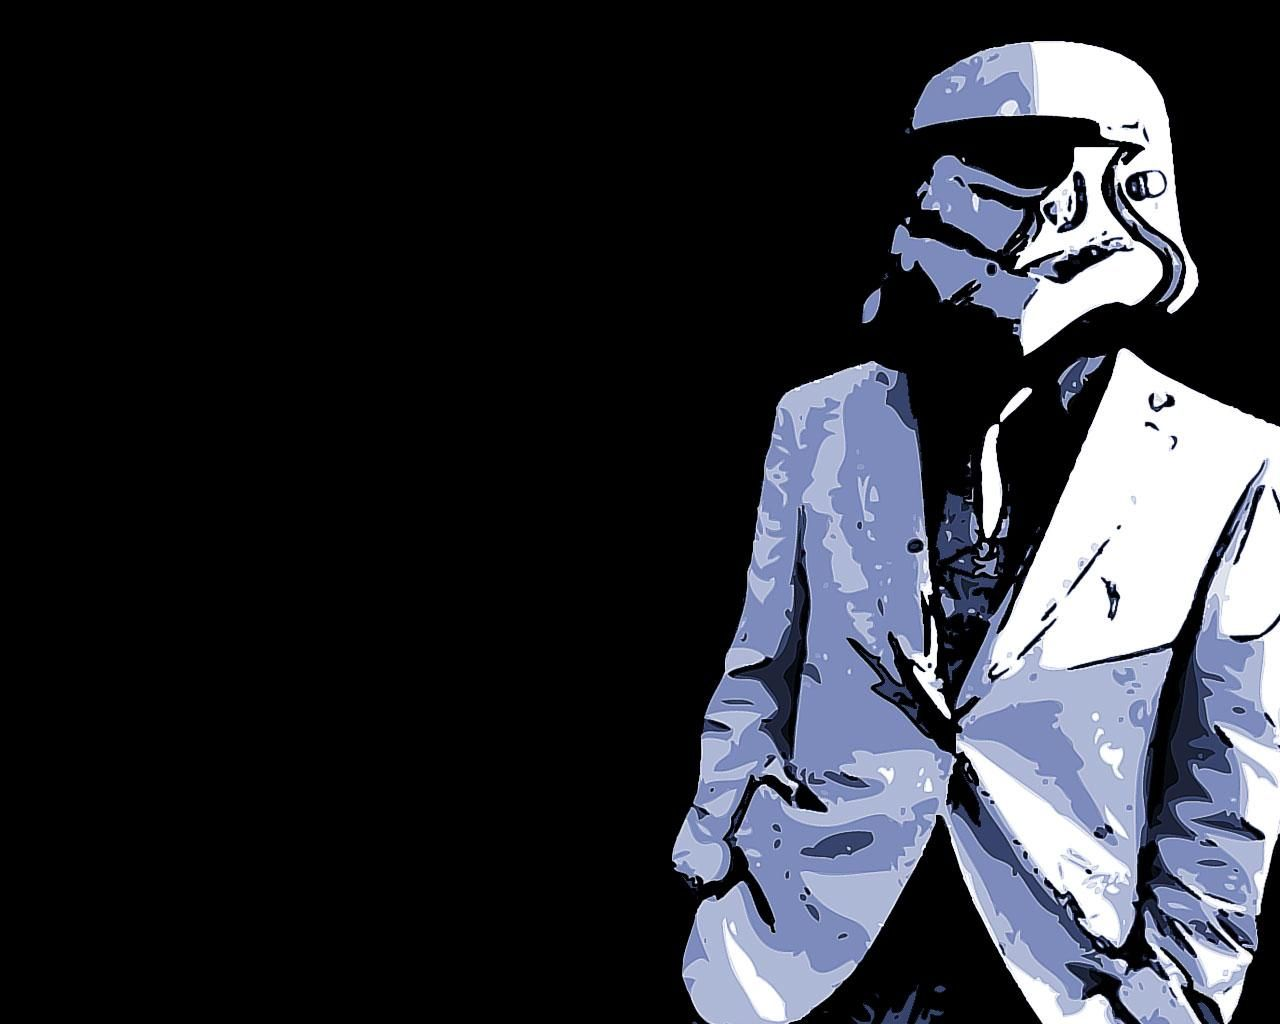 Cool Star Wars Wallpaper Download Best Desktop HD